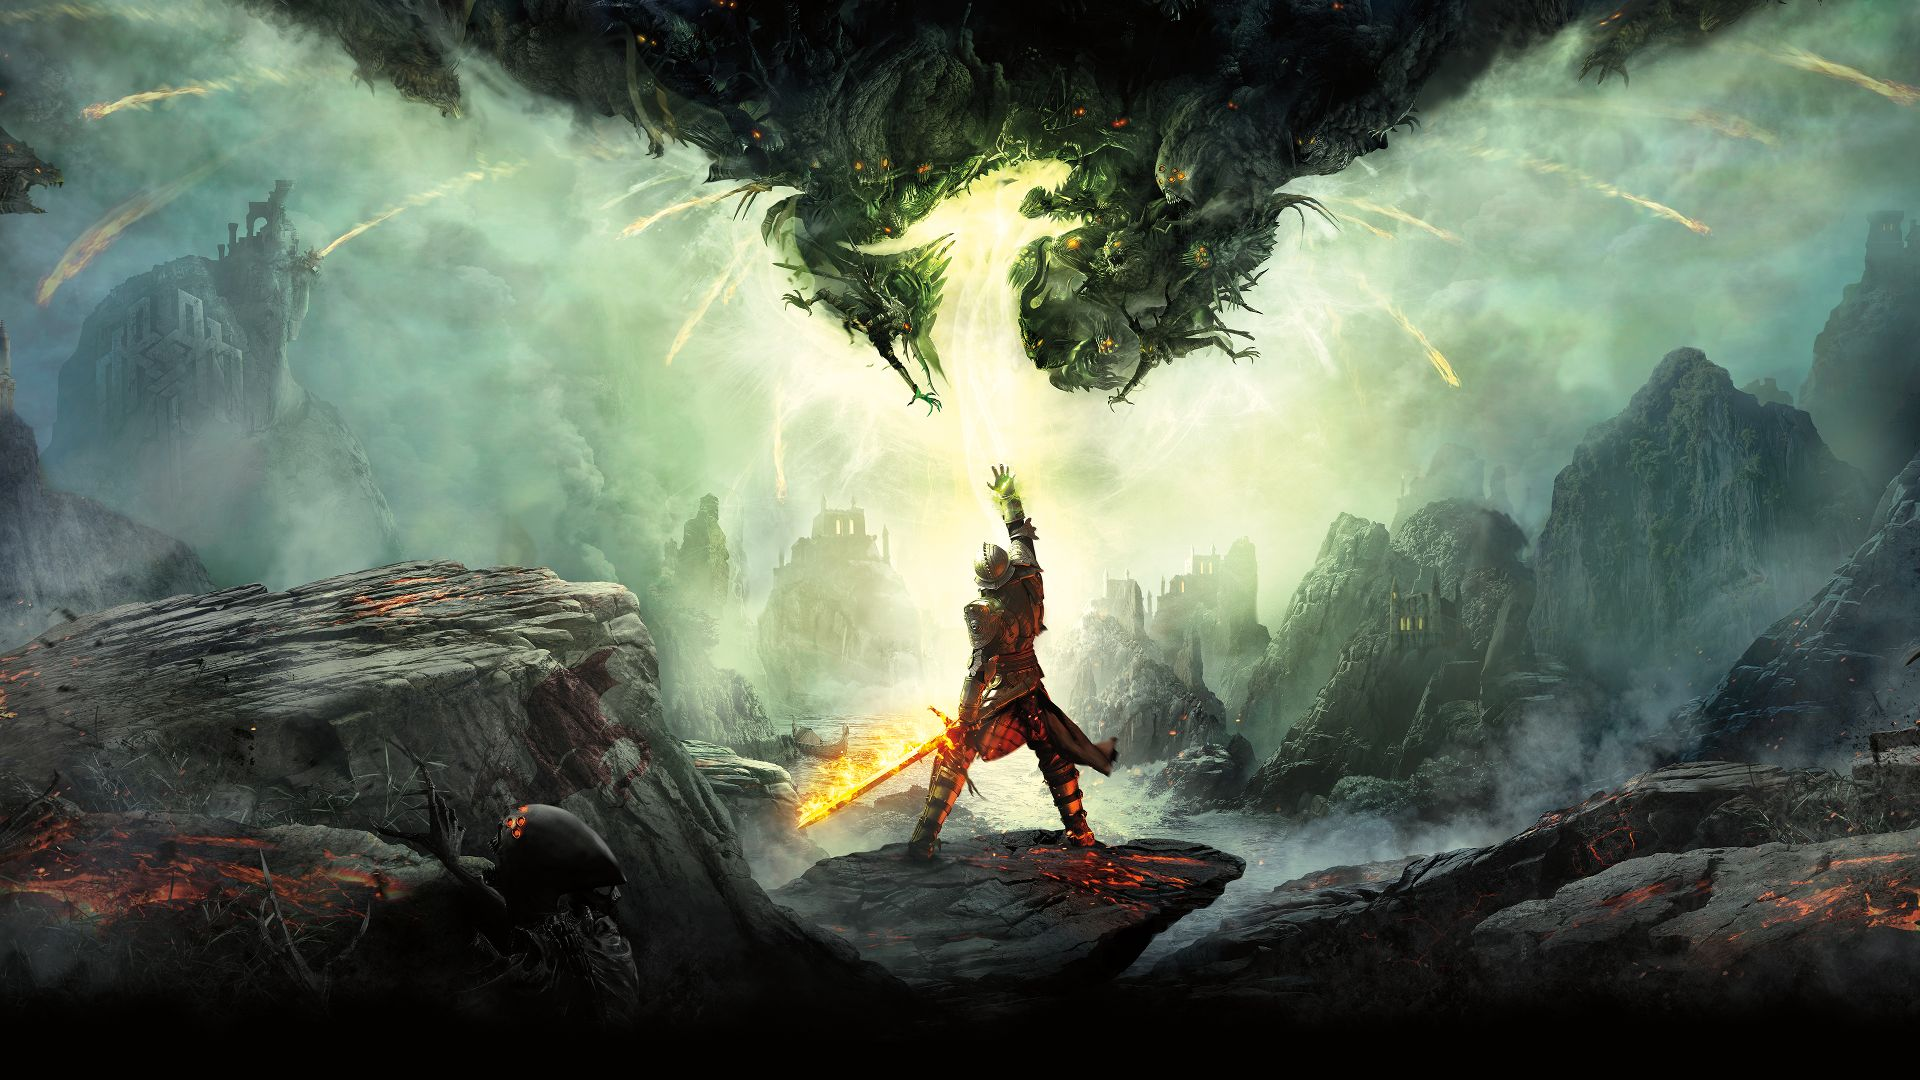 Free Download Dragon Age 4 Everything We Know So Far About The